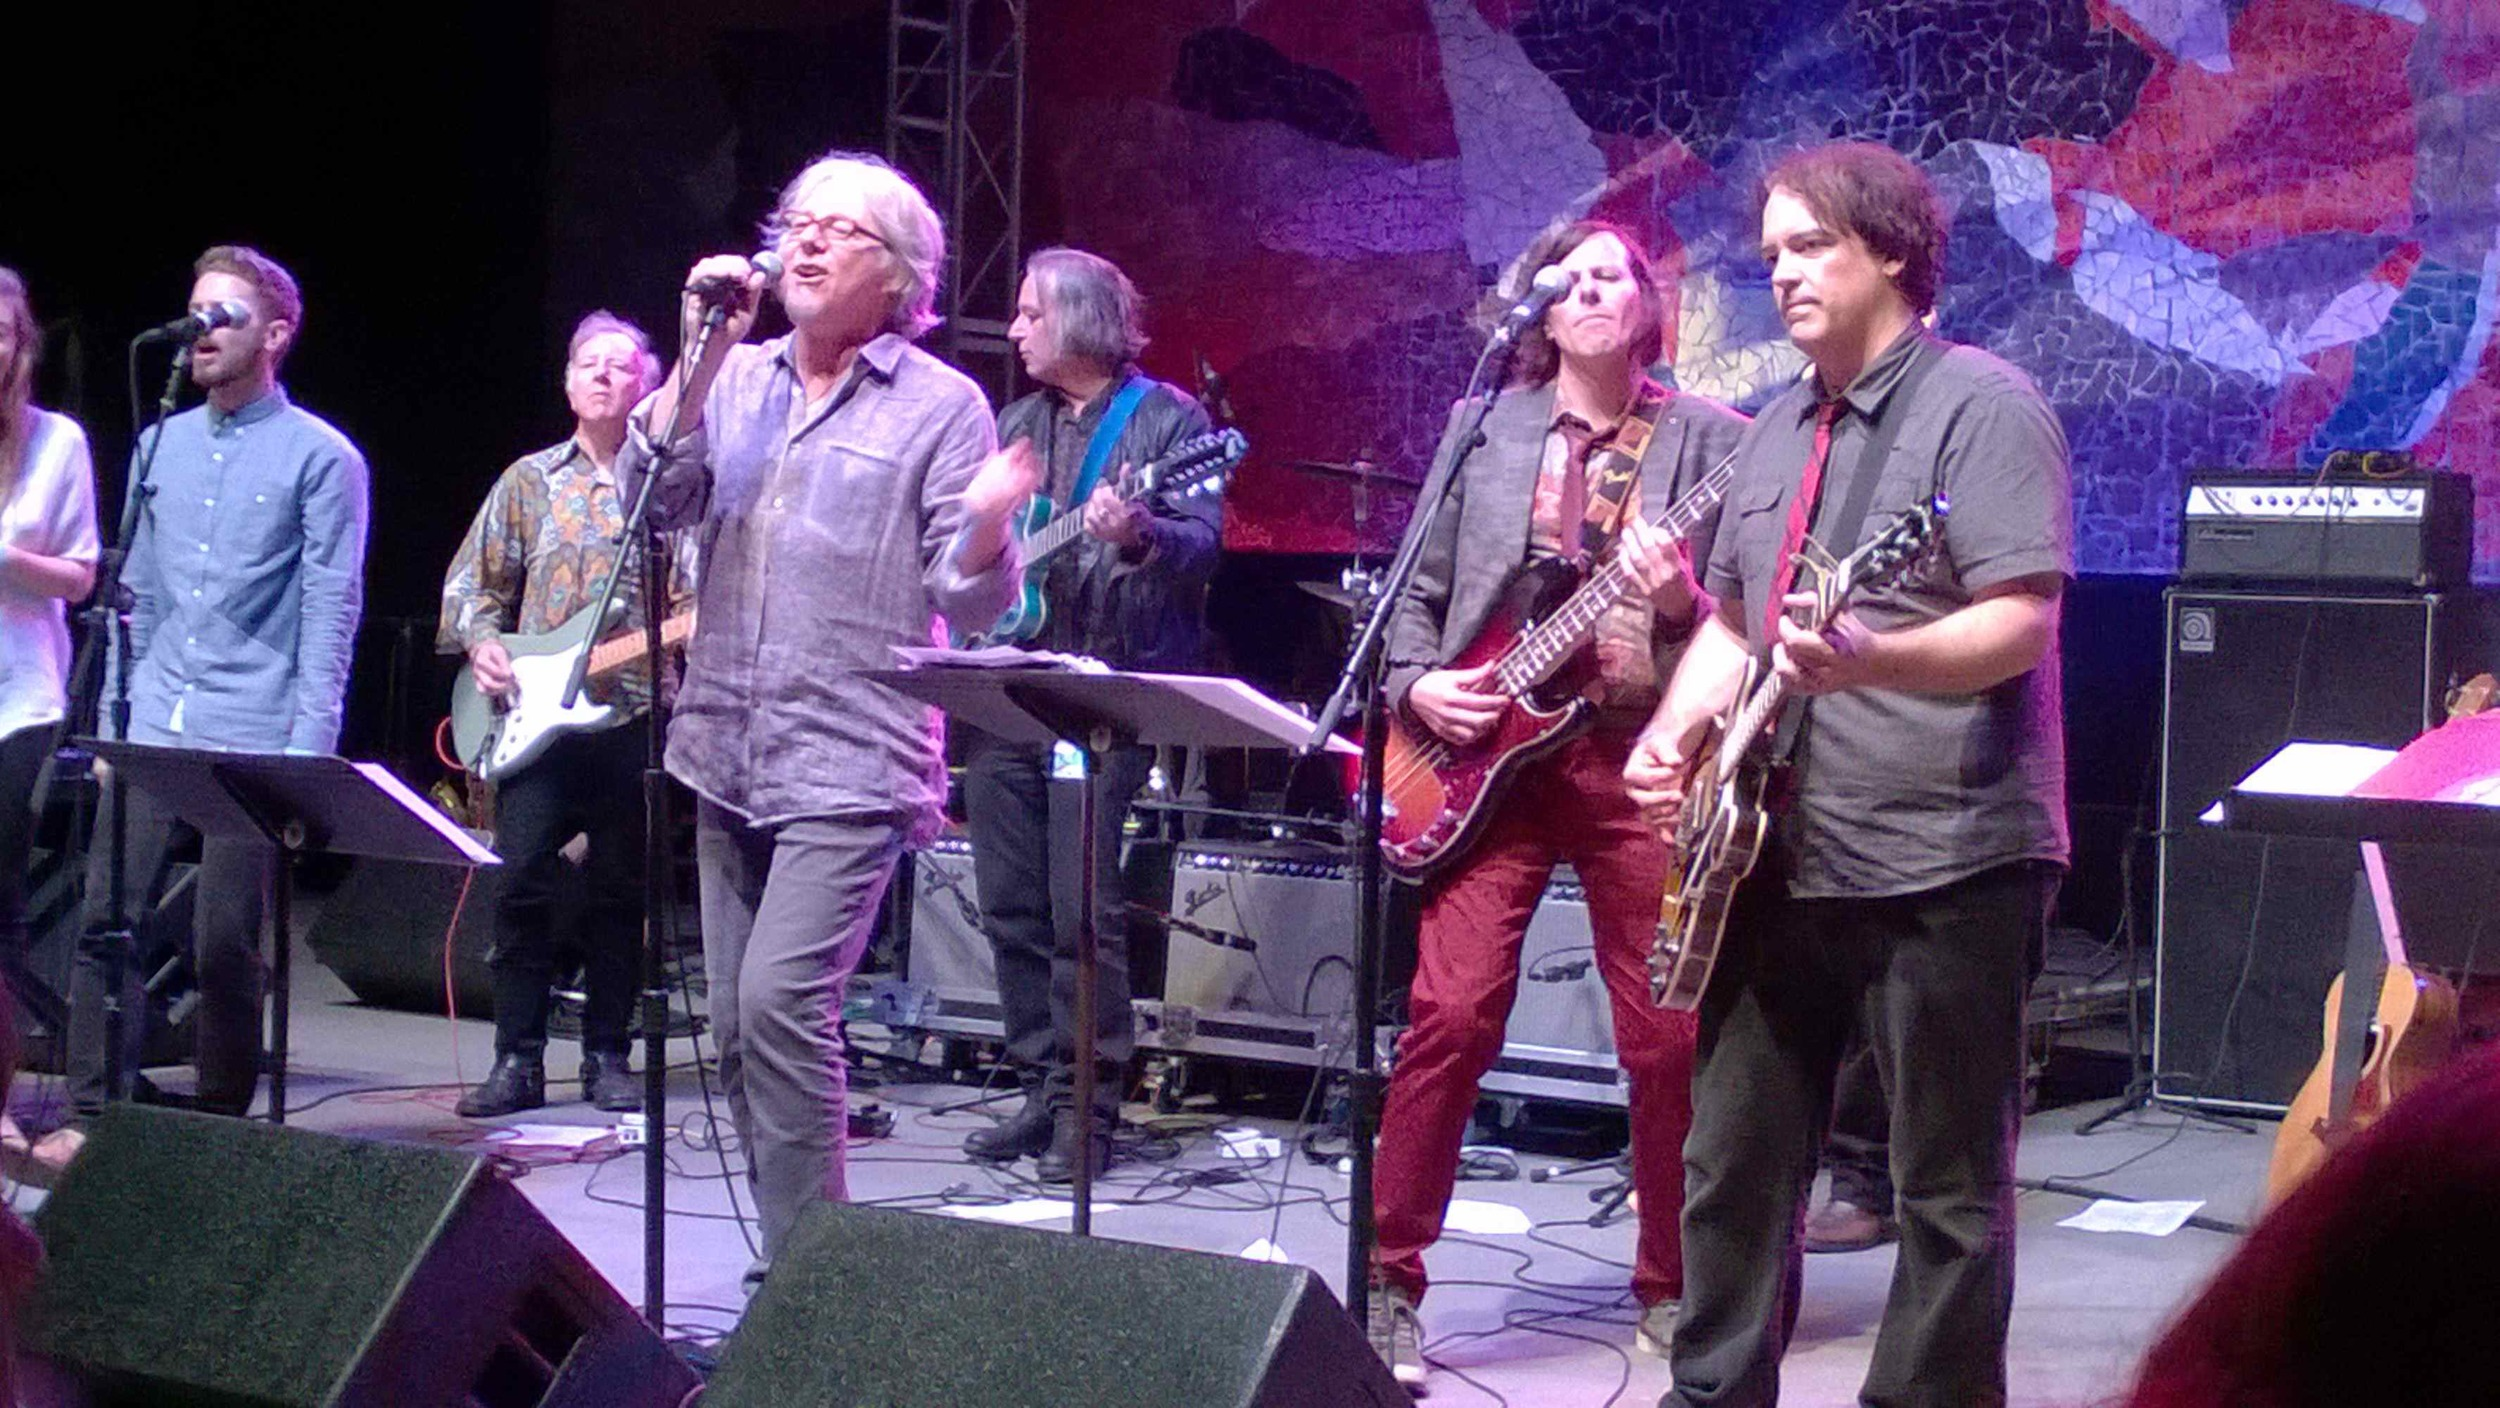 Big Star's Third featuring Ken Stringfellow with friends Mike Mills, Peter Buck, Jon Auer and others. Amazing show. Fans in LA should try to check out the upcoming show in that city. it should be equally amazing with additional guests including Aimee Mann.